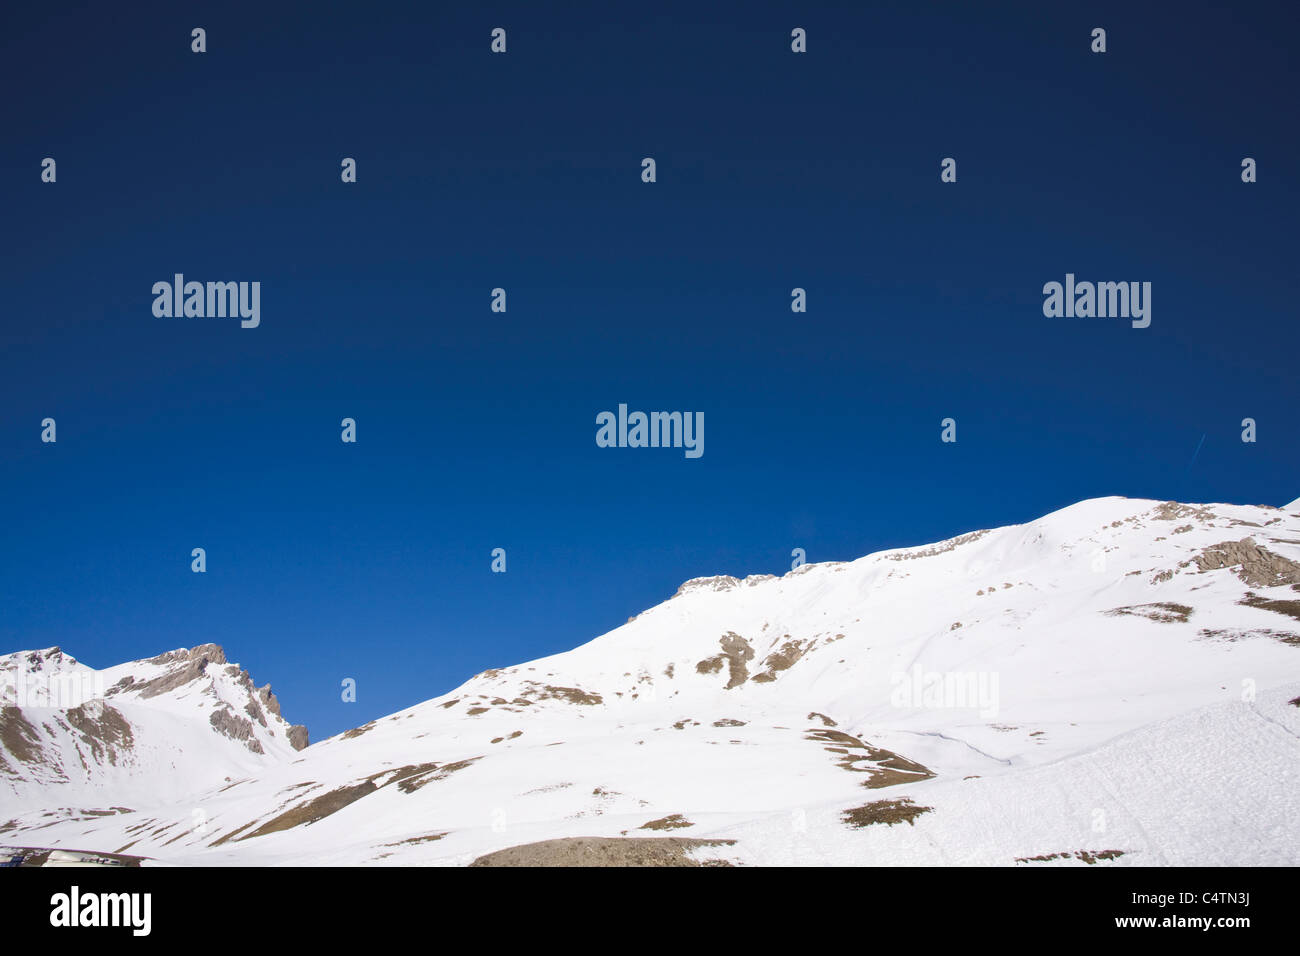 Snow-covered mountain against clear blue sky - Stock Image